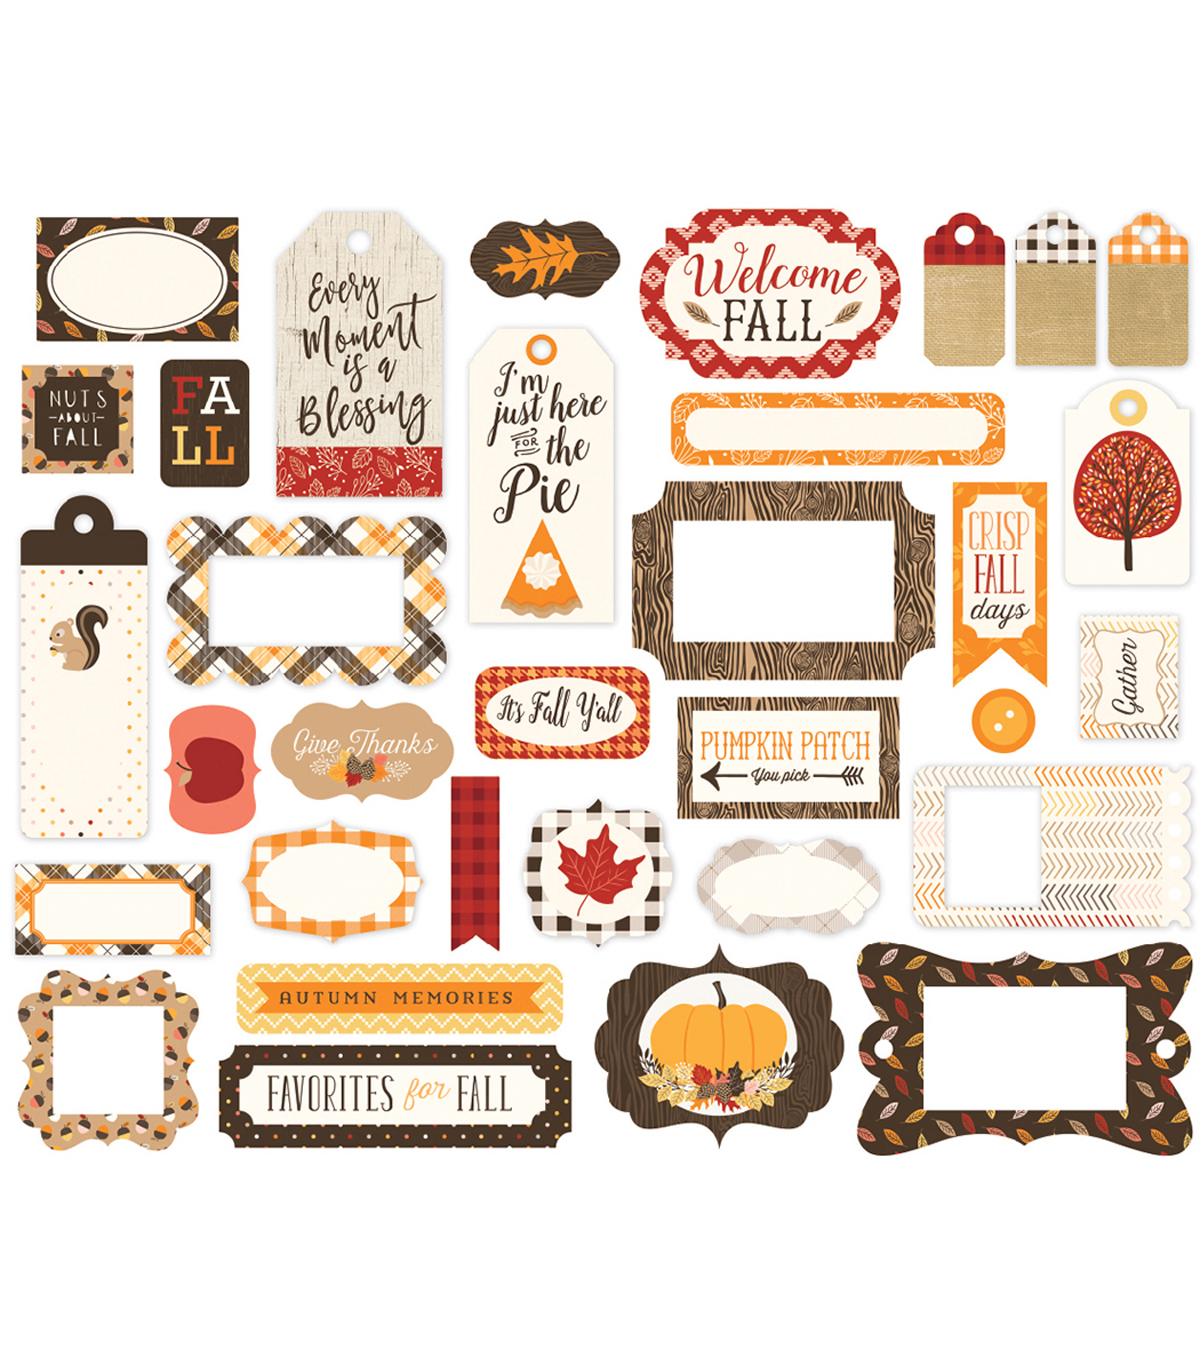 Hello Fall Ephemera Cardstock Die-Cuts-Frames & Tags